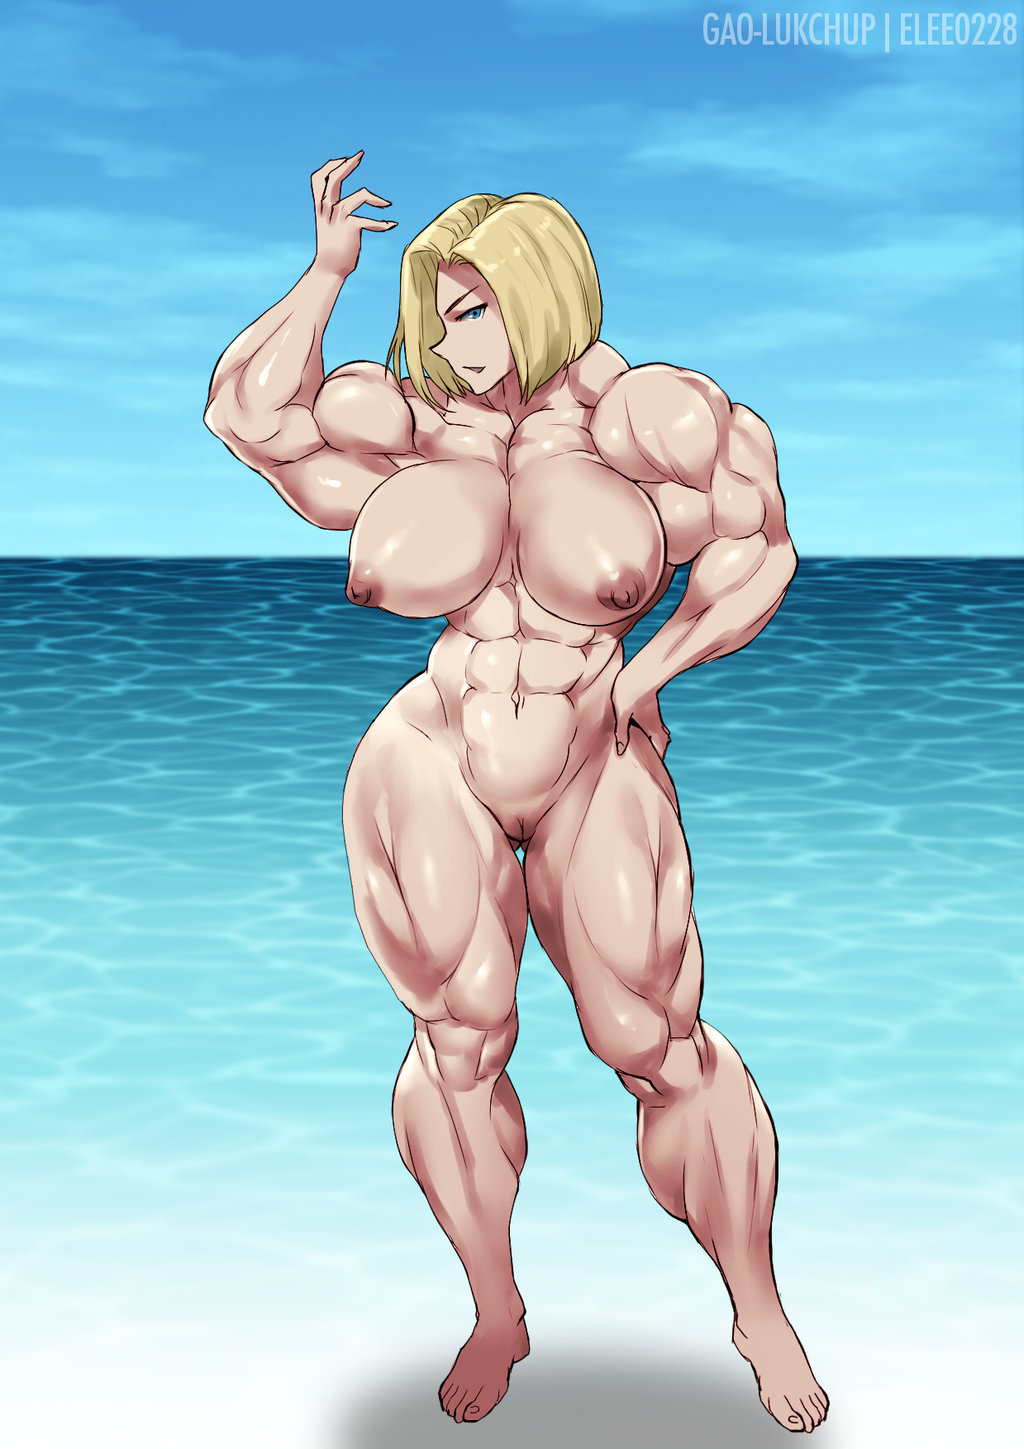 Android 18 Nude rule 34 - abs android 18 barefoot biceps dragon ball